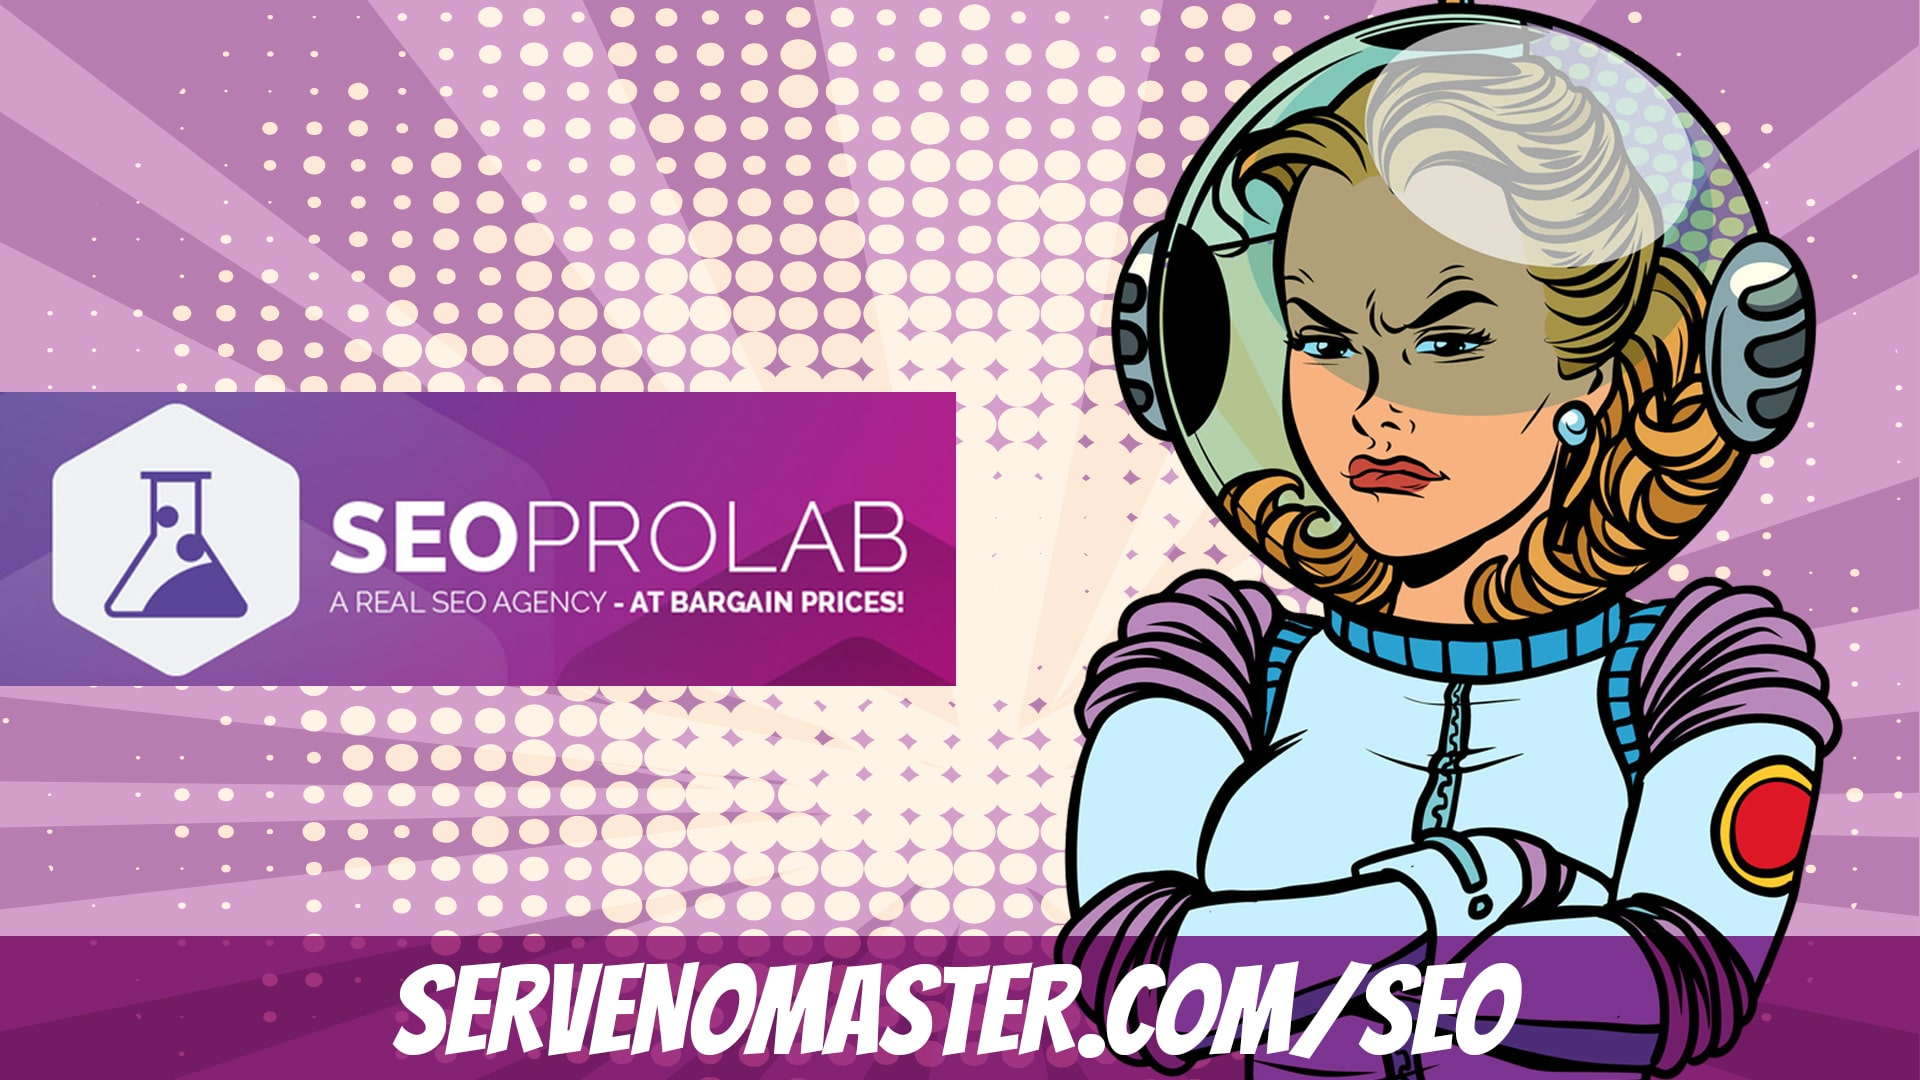 seopo lab banner woman animated illustration